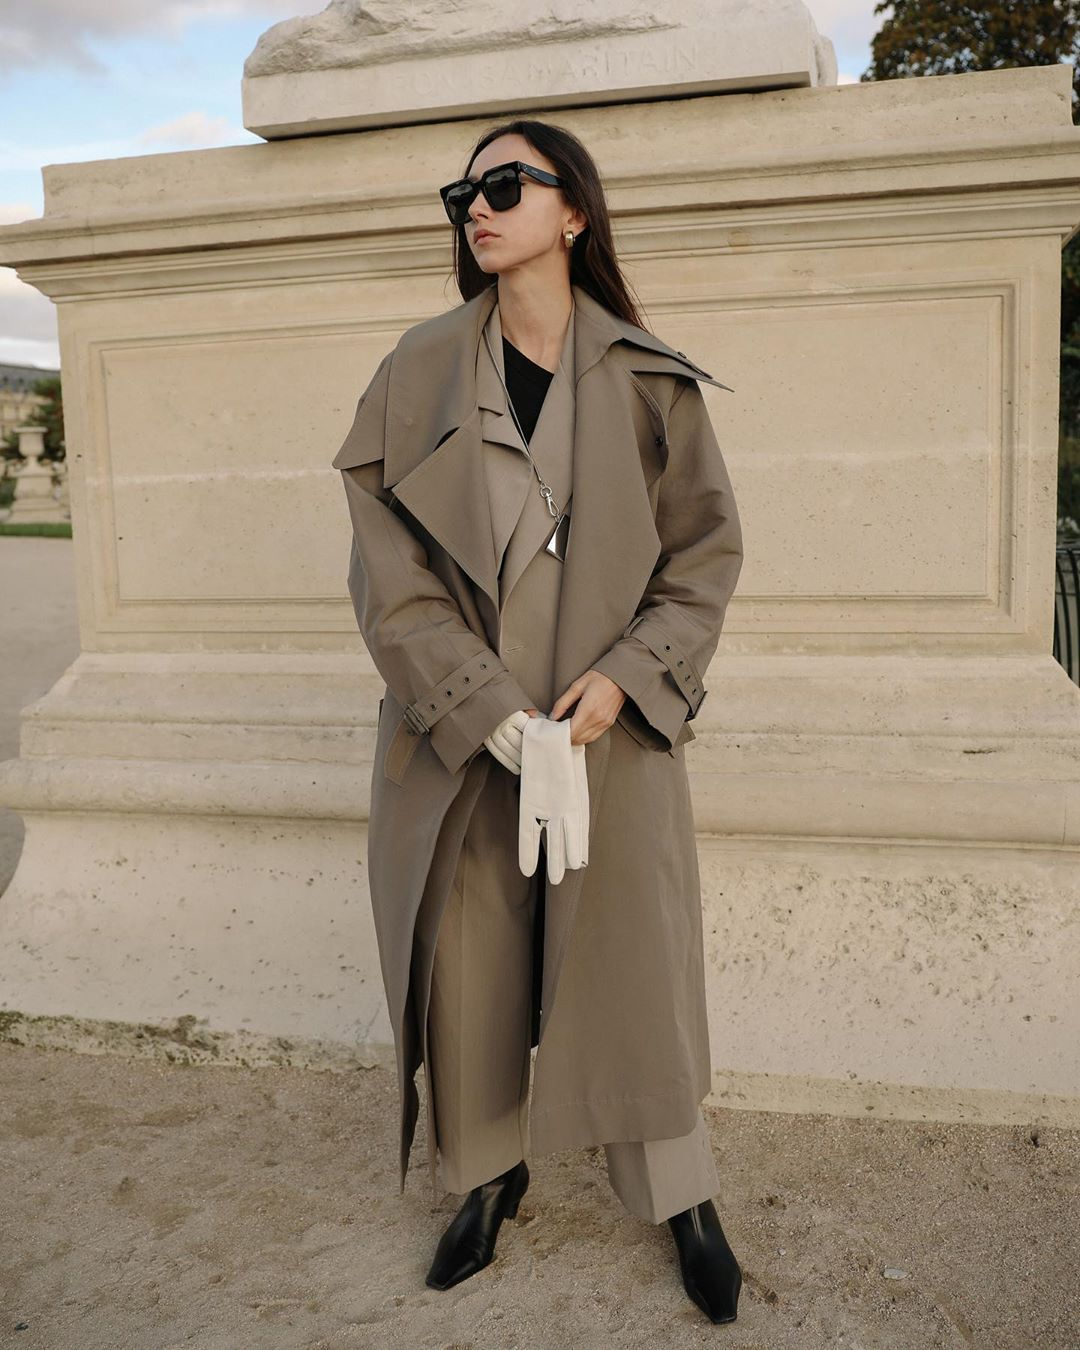 beatrice-gutu-low-classic-belted-layered-canvas-trench-coat-instagram